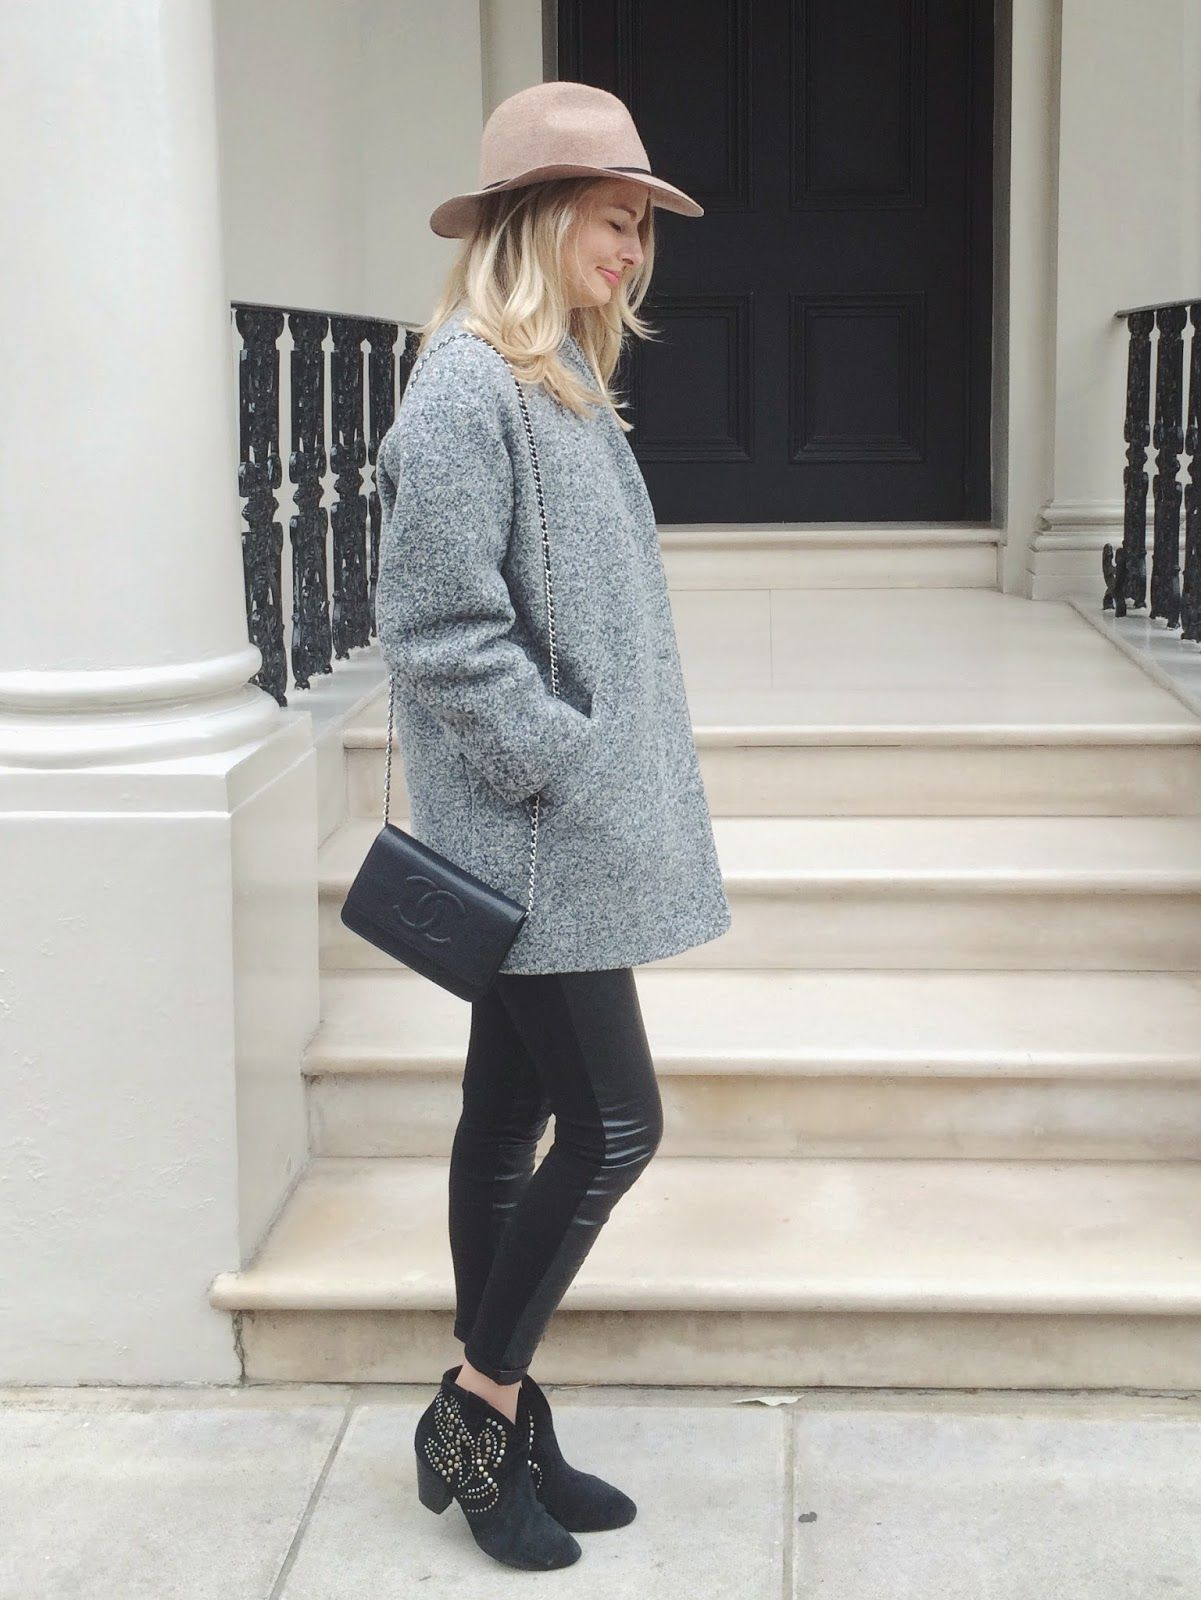 93d2c401cb081 london street style, outfit of the day, grey coat, grey iro coat, blonde  hair, tan fedora hat, black and grey outfit